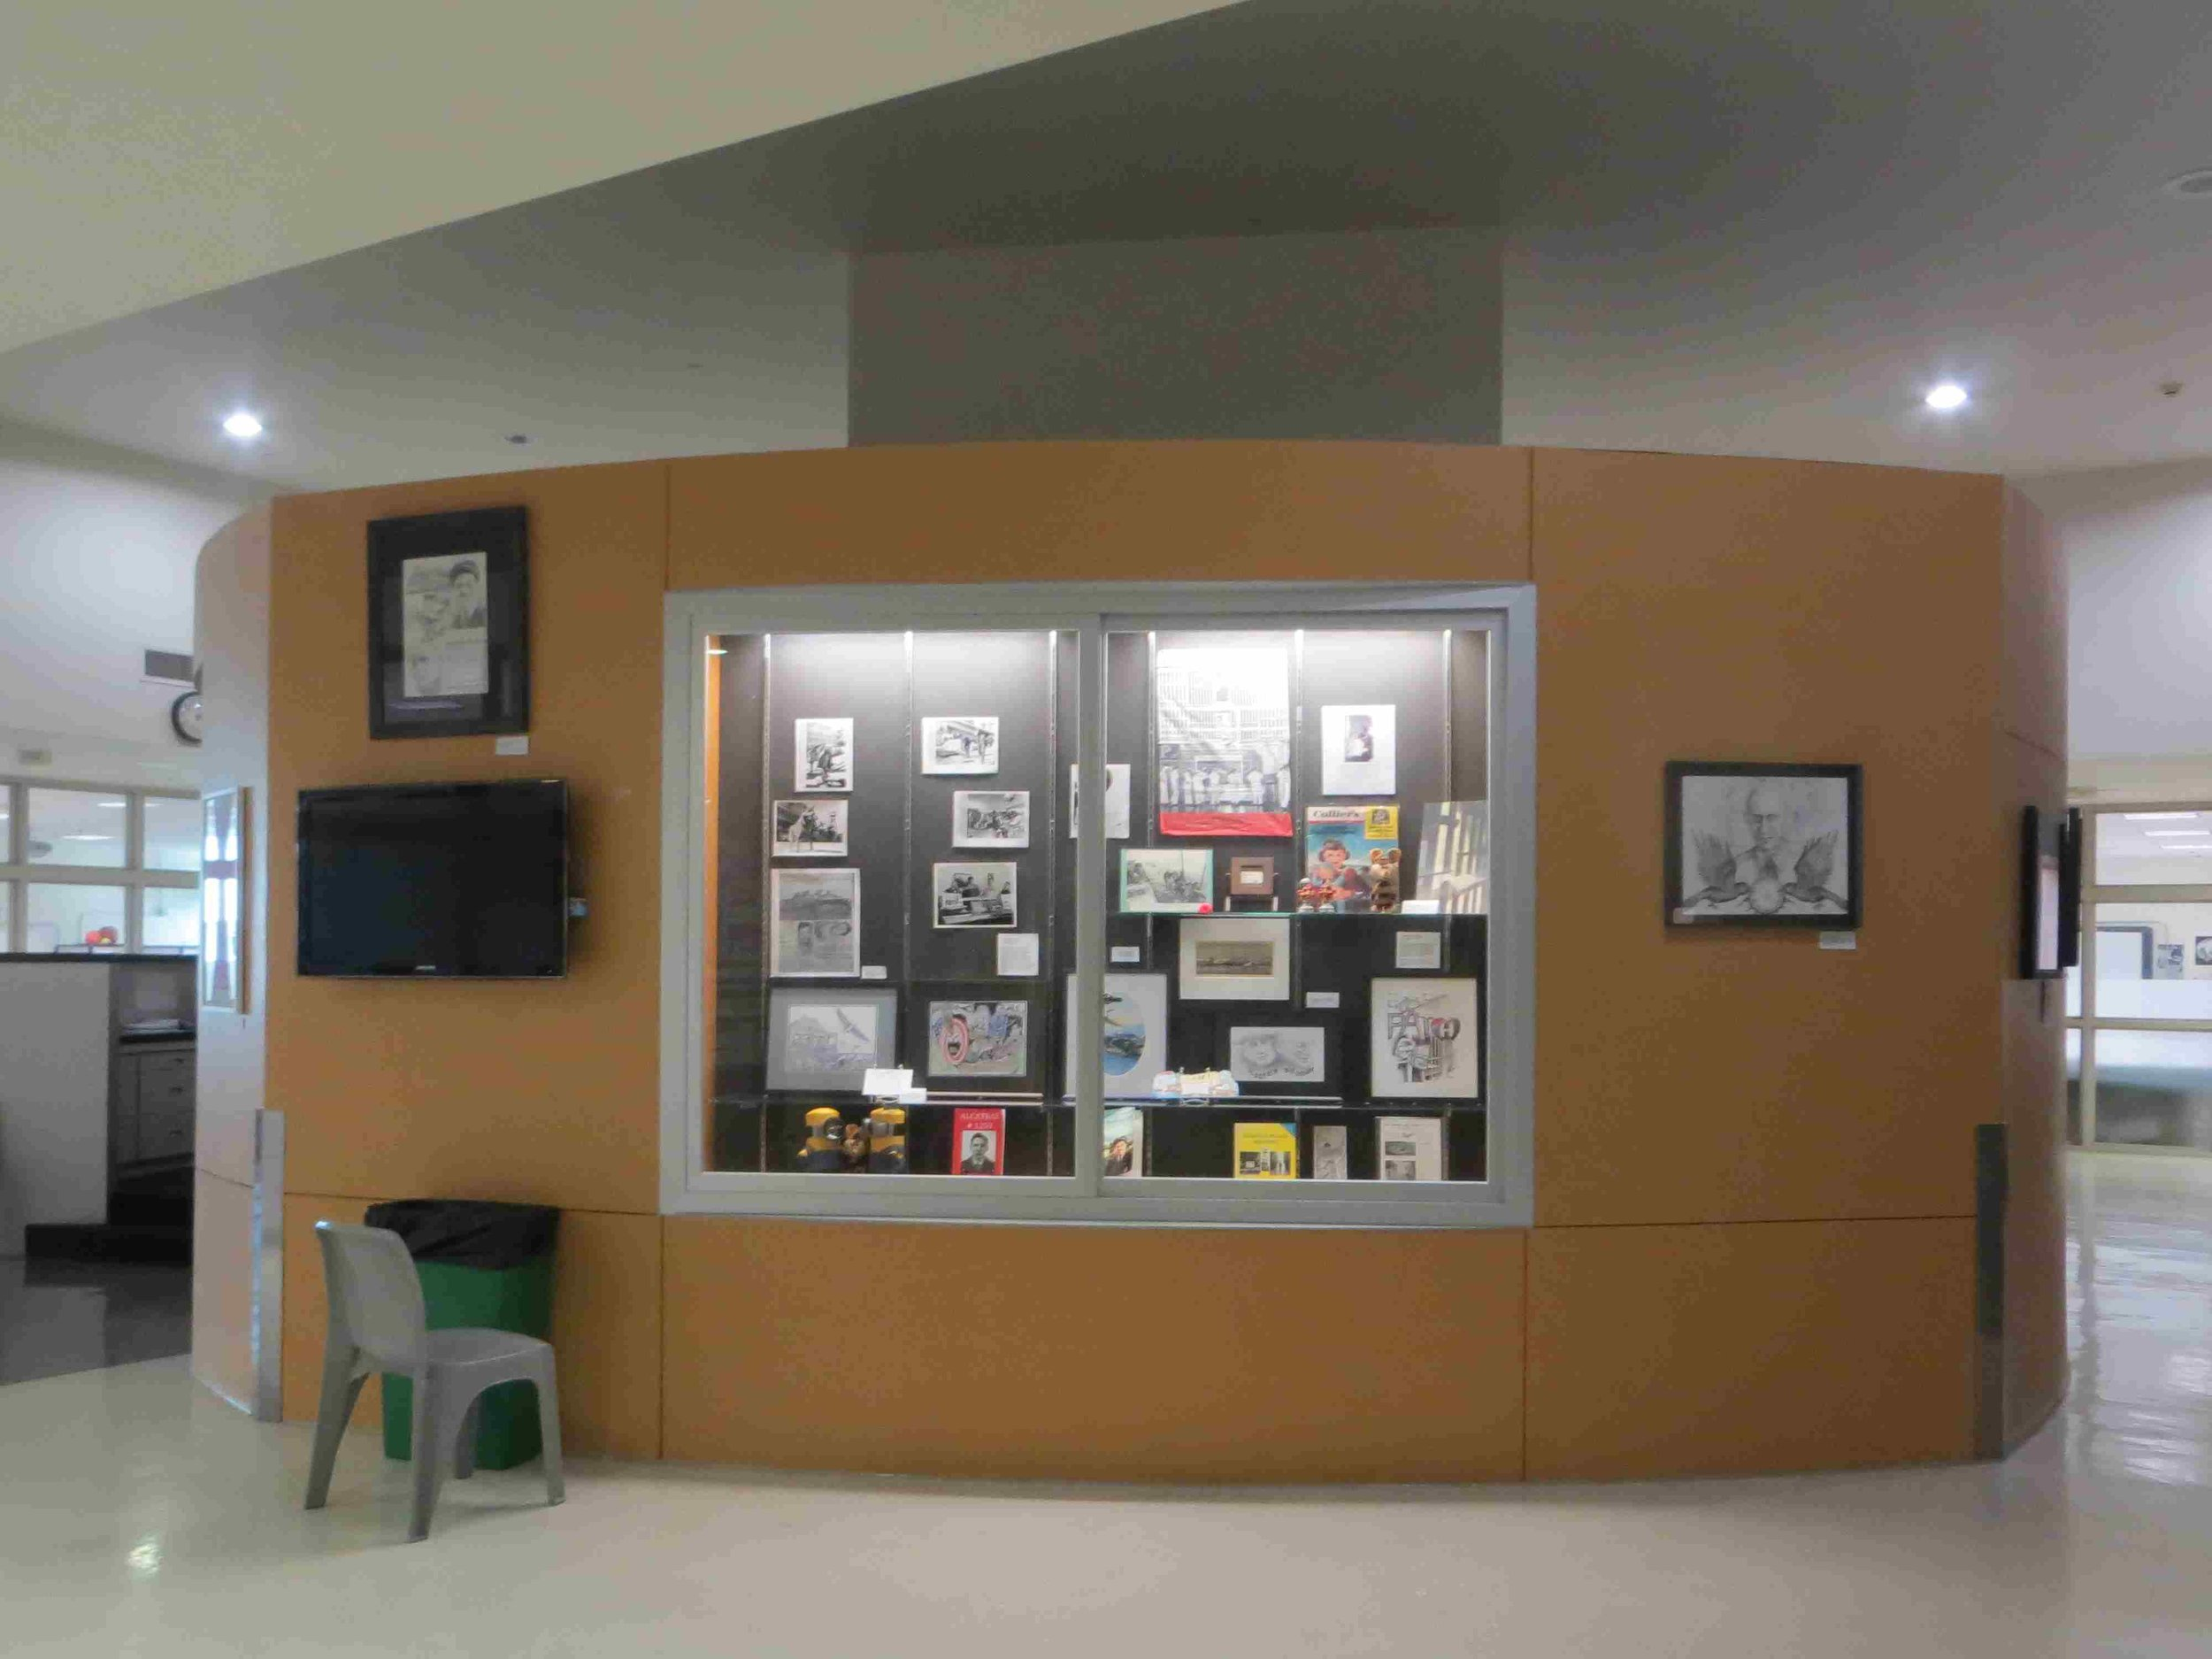 Woodside Juvenile Hall Display Case-014 - Copy.jpg